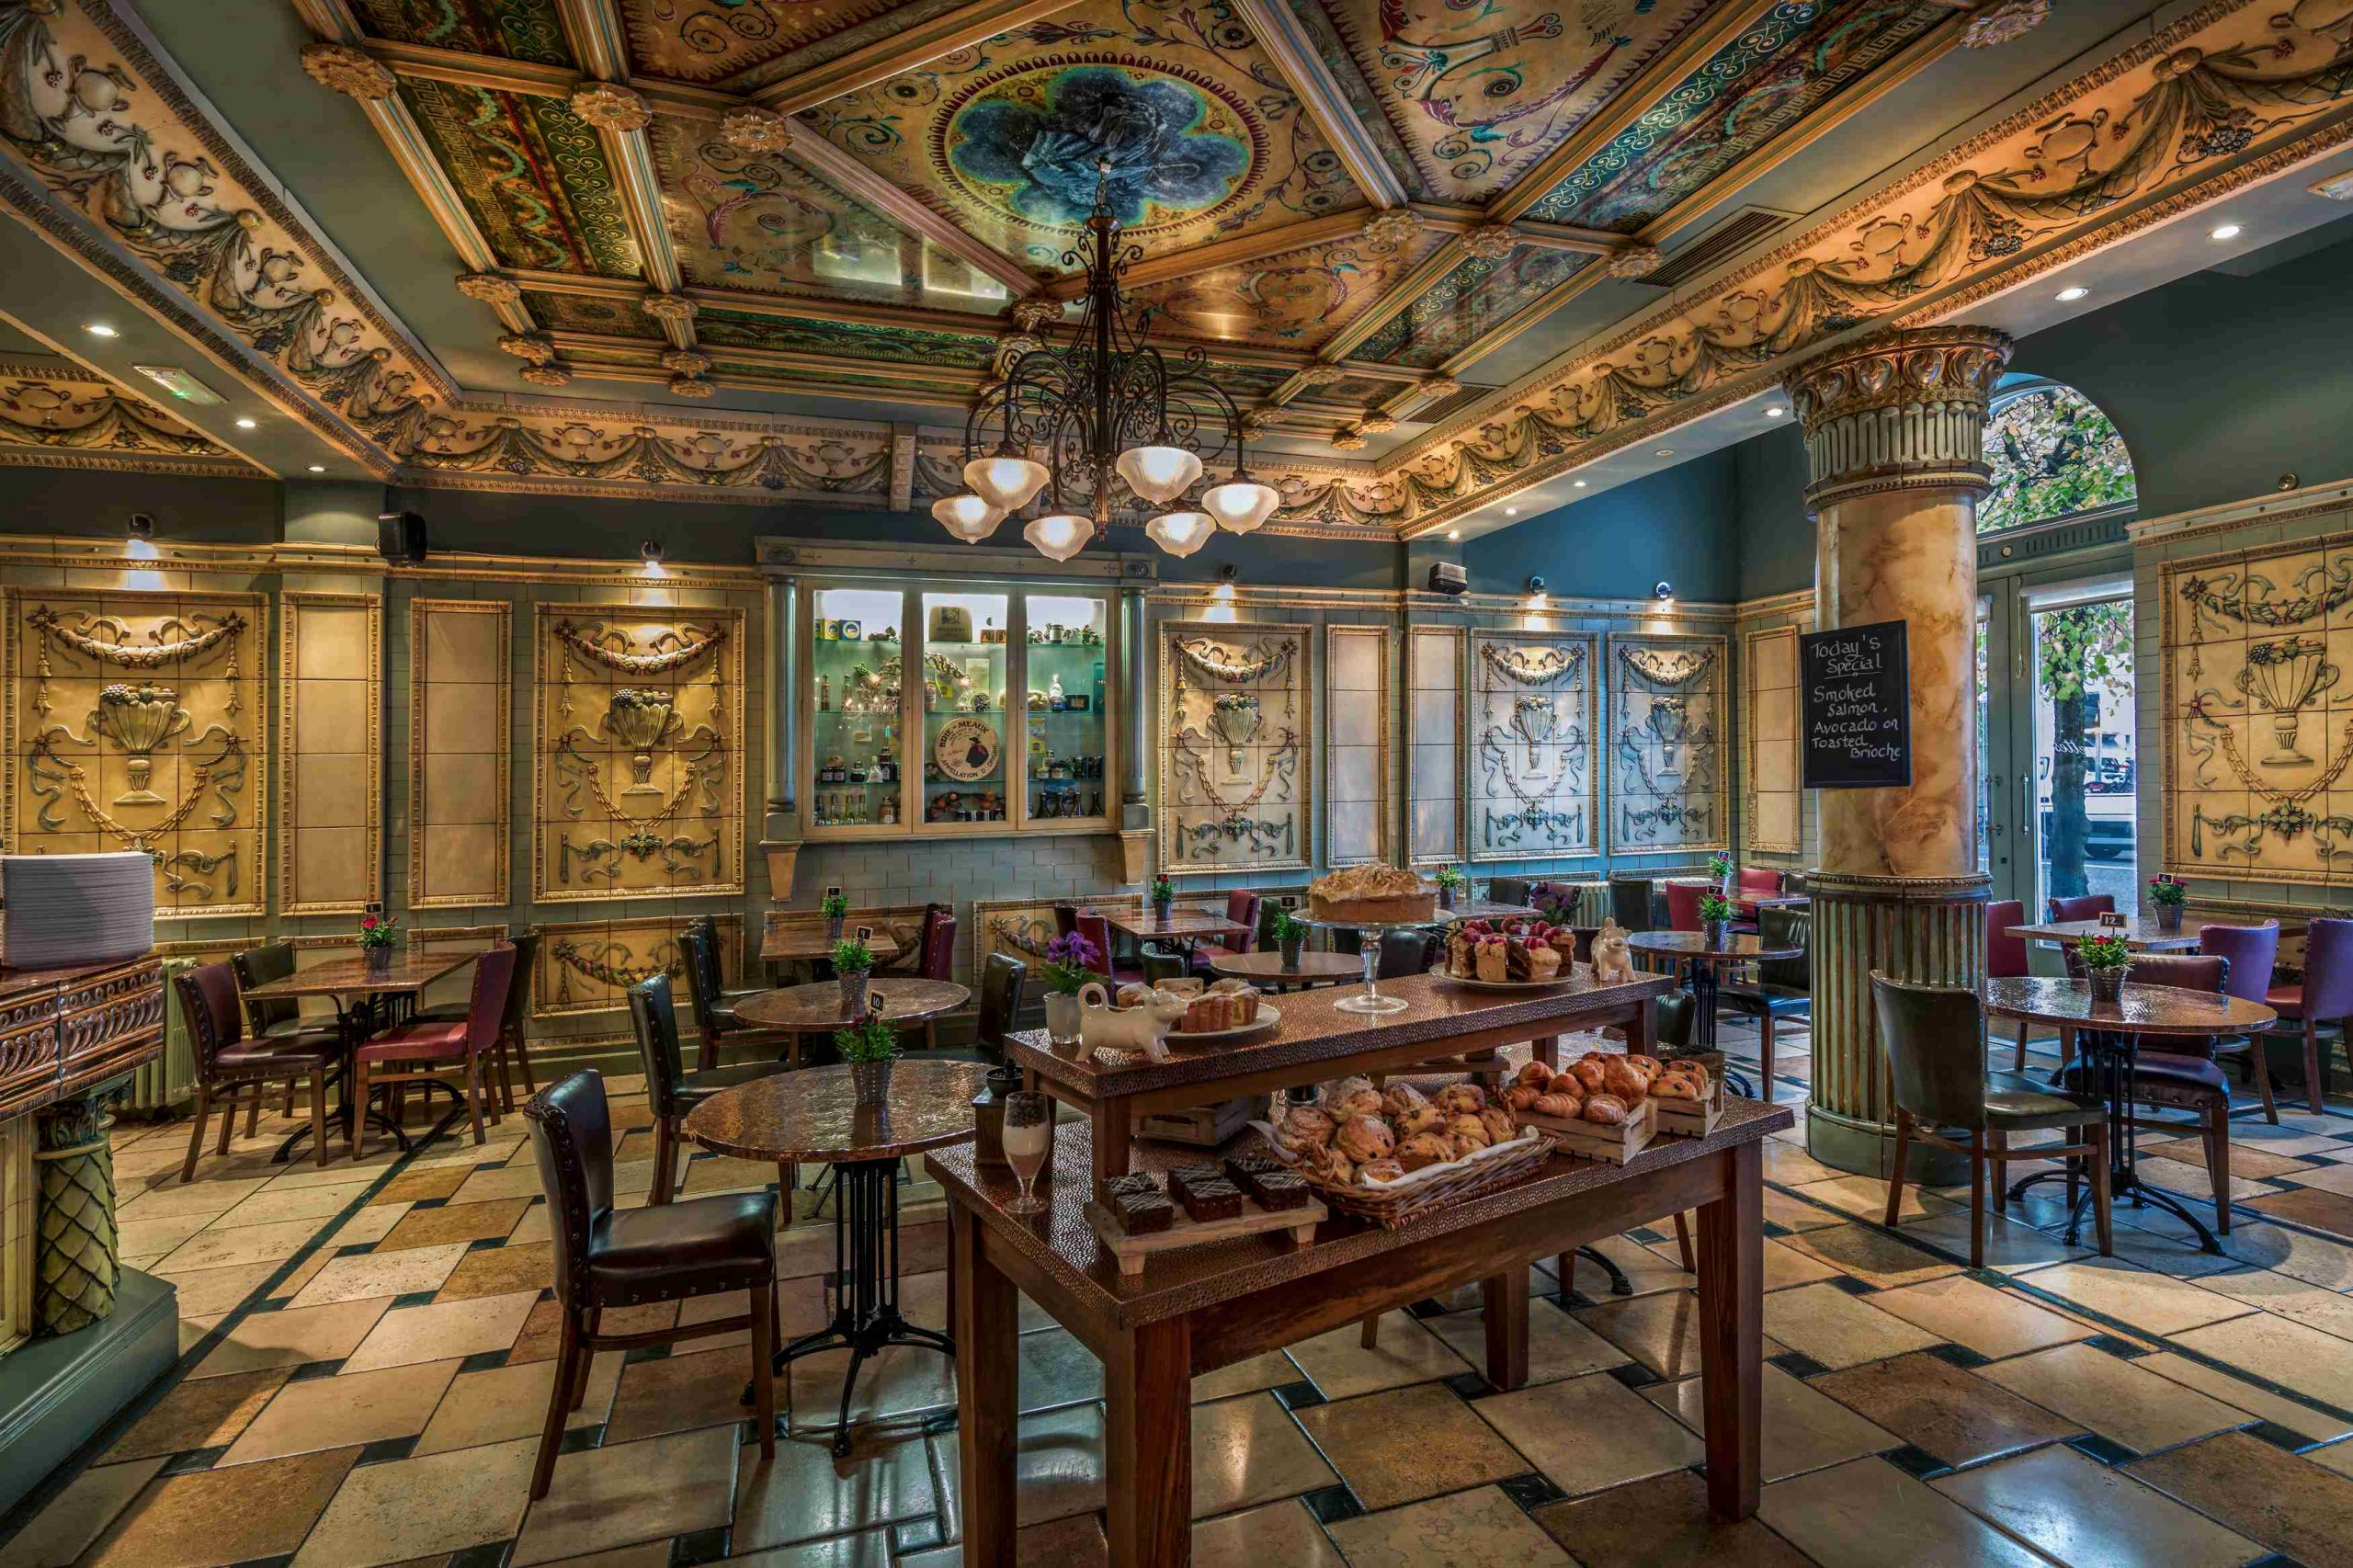 TOP URBAN HOTELS FOR FOOD LOVERS IN IRELAND